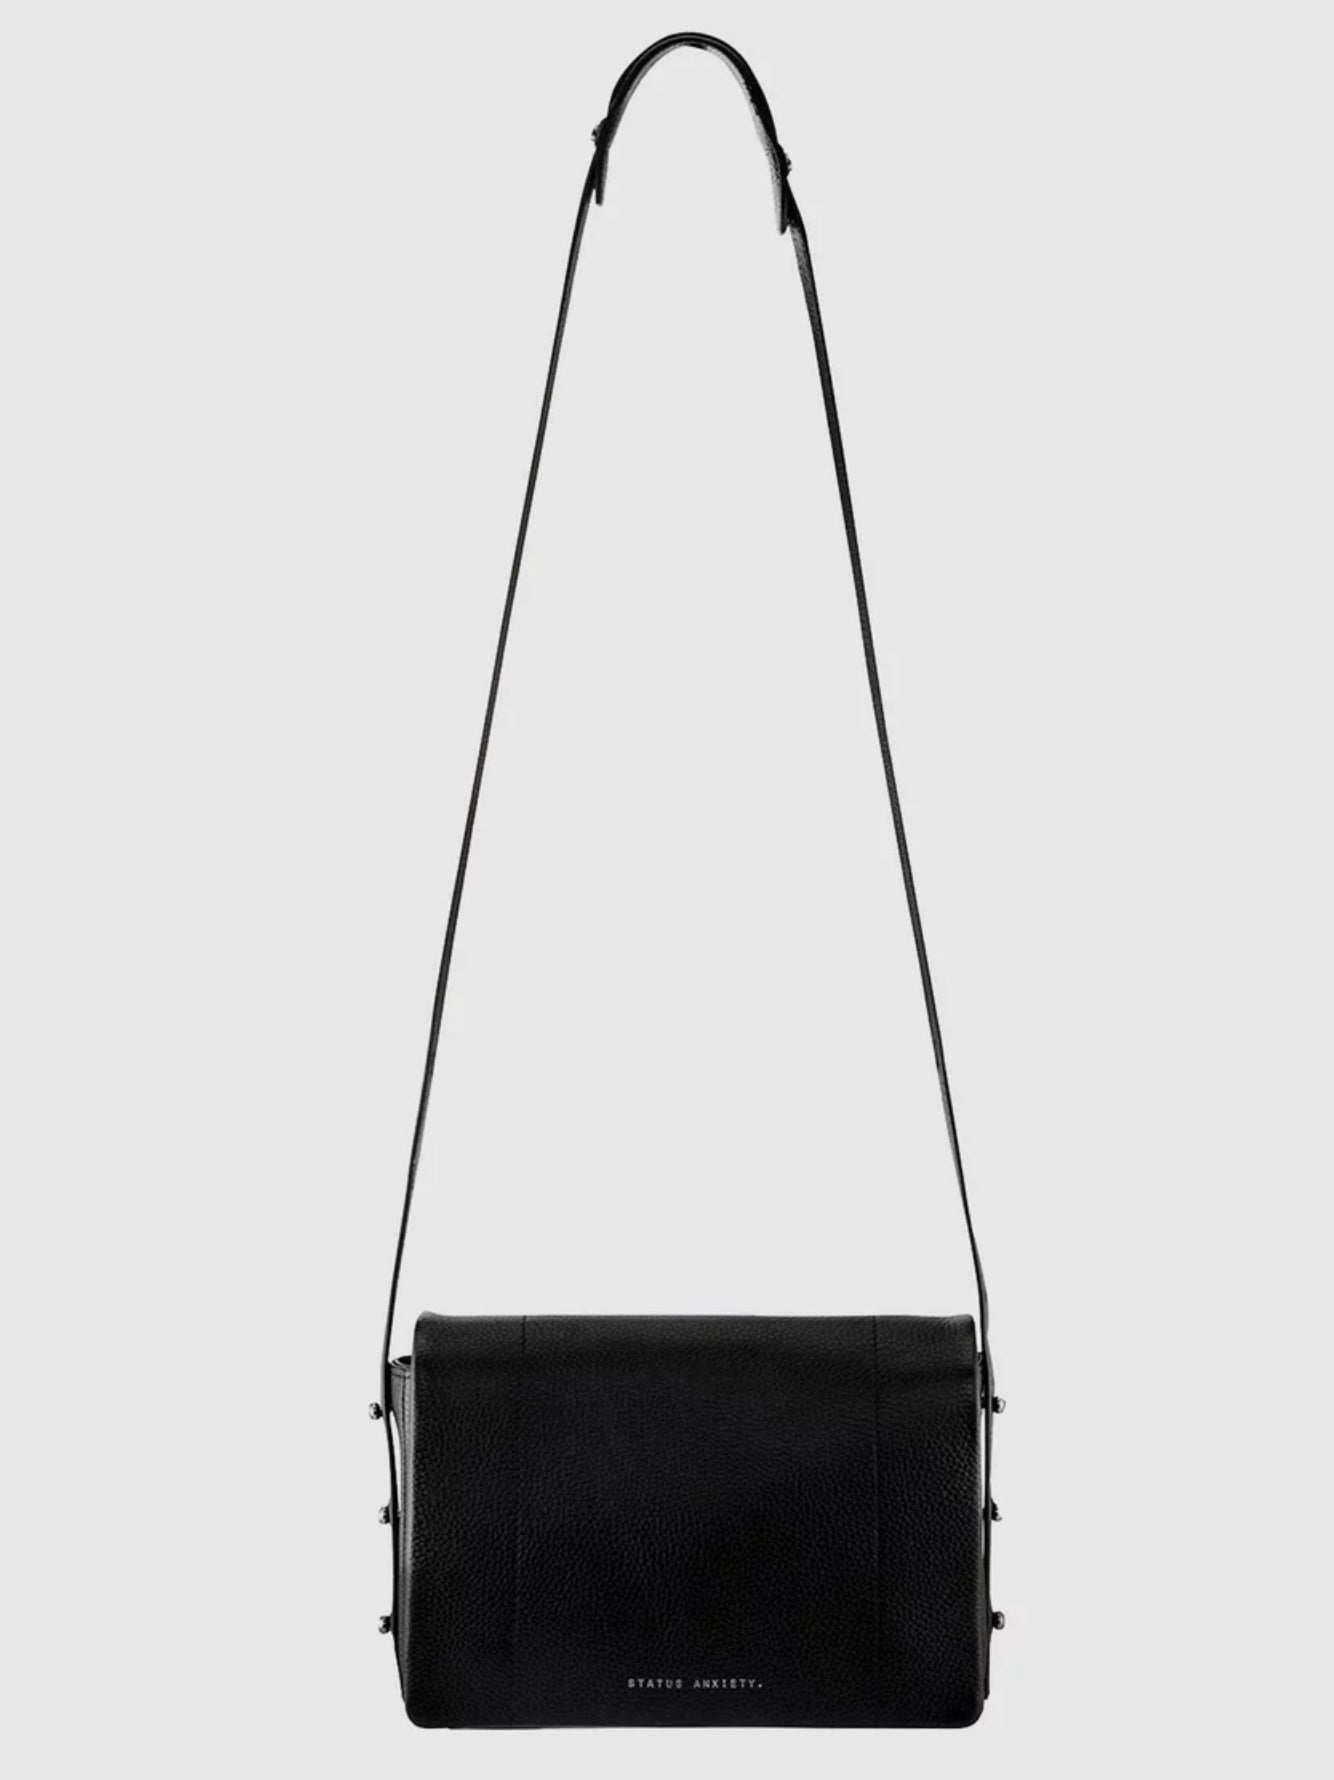 Status Anxiety - Seccumb black cross-body shoulder bag